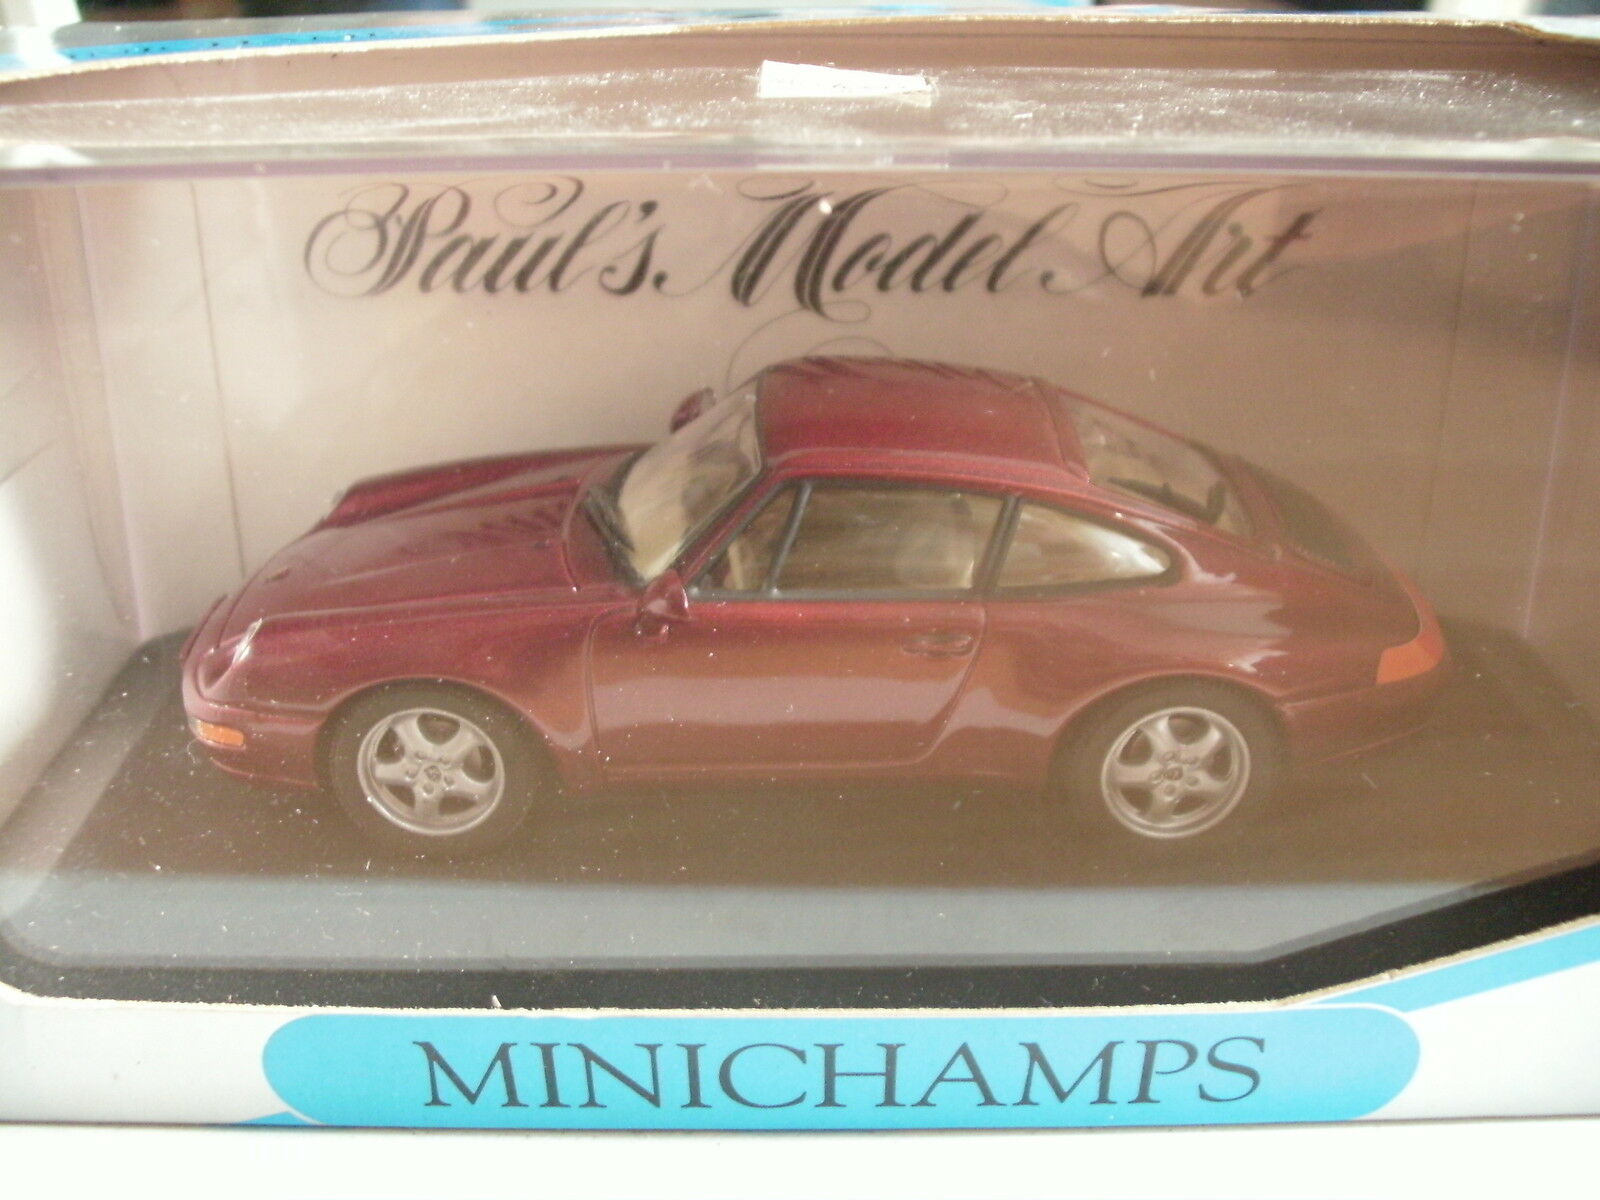 Minichamps Porsche 911 1994 in in in Red Metallic on 1 43 in Box 9c0d8b